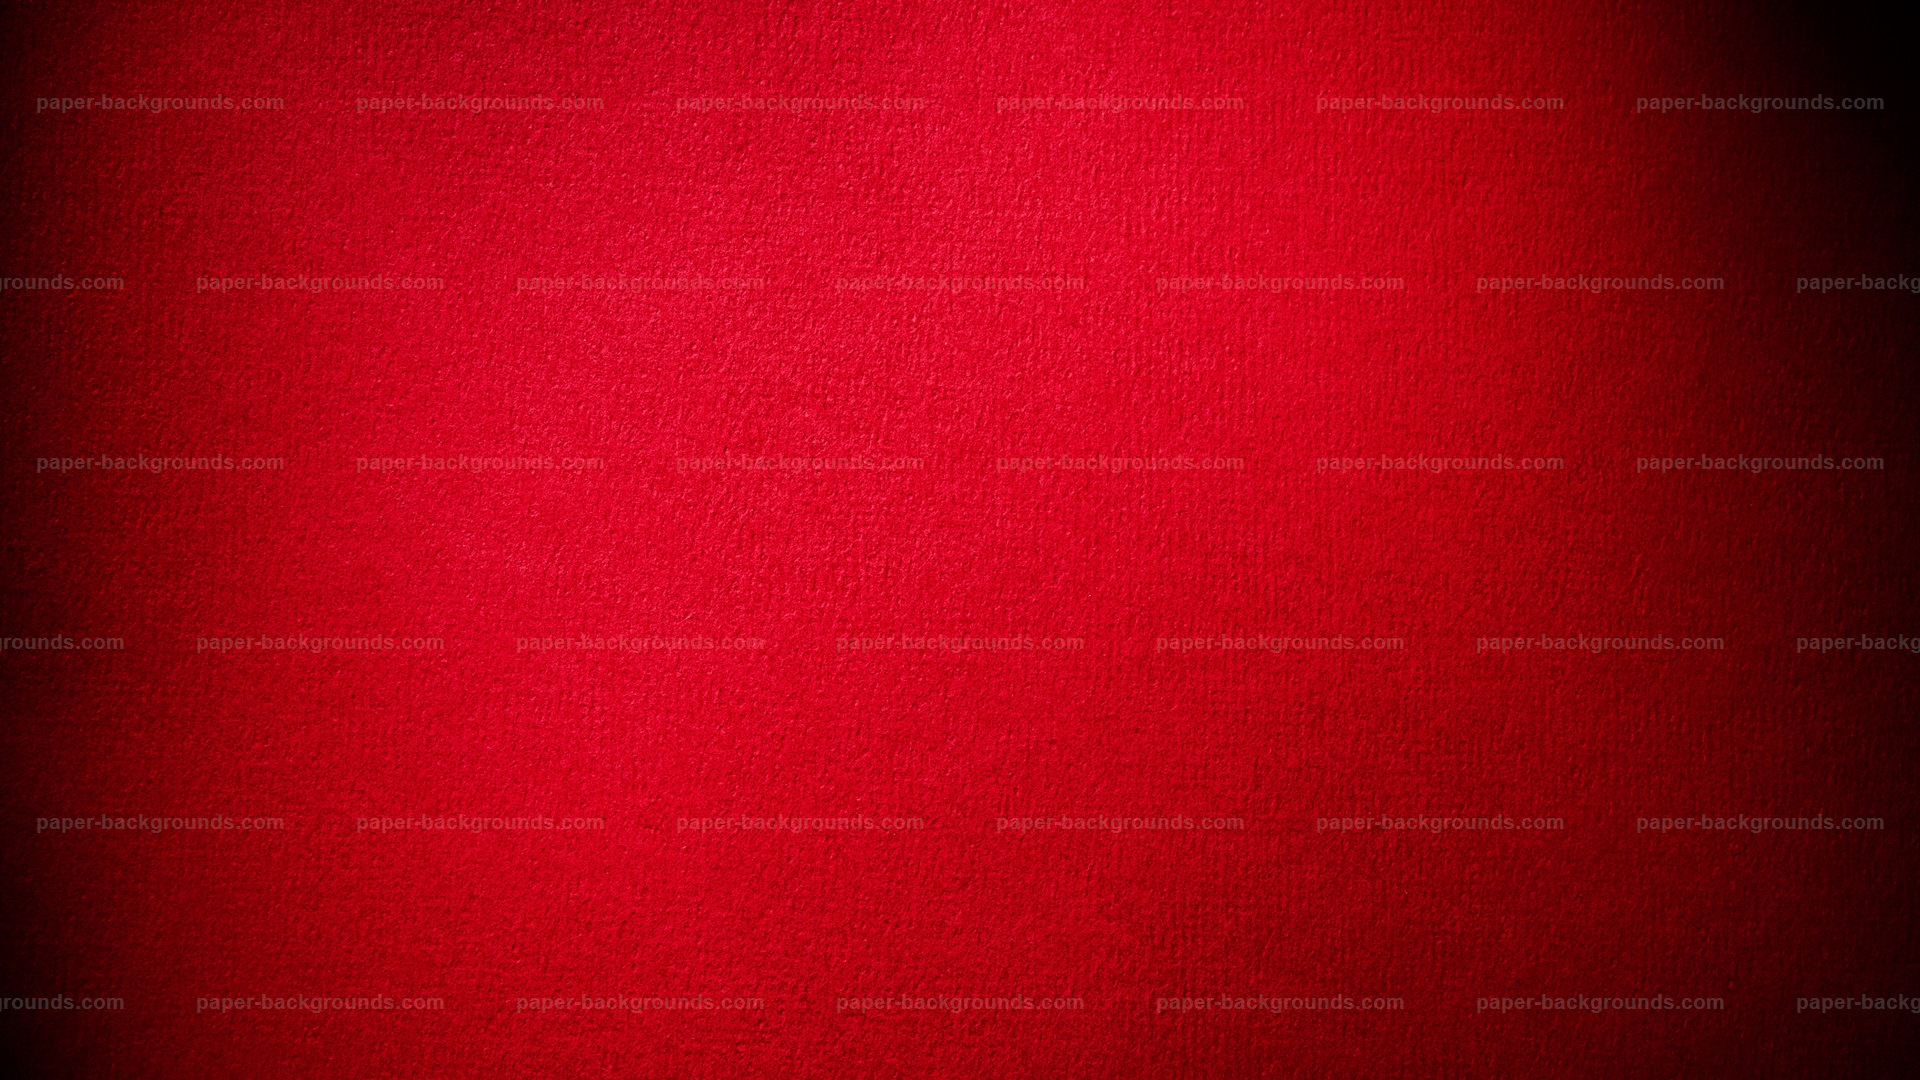 Deep Red Paper Background Texture HD